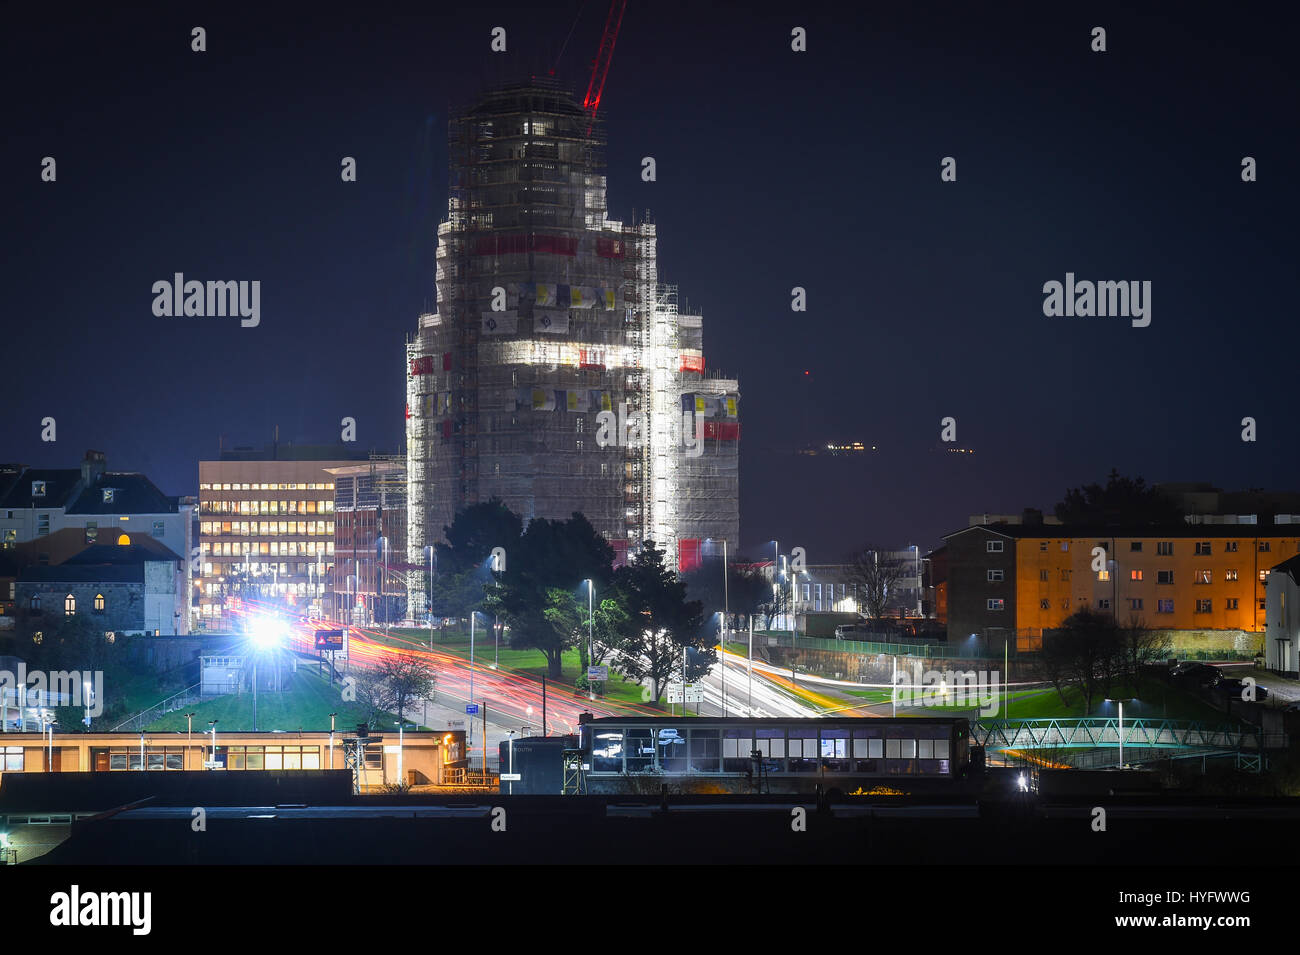 Picture by Paul Slater/PSI - Copyrighted Image Beckley Point building in Plymouth, Devon by night during construction. - Stock Image